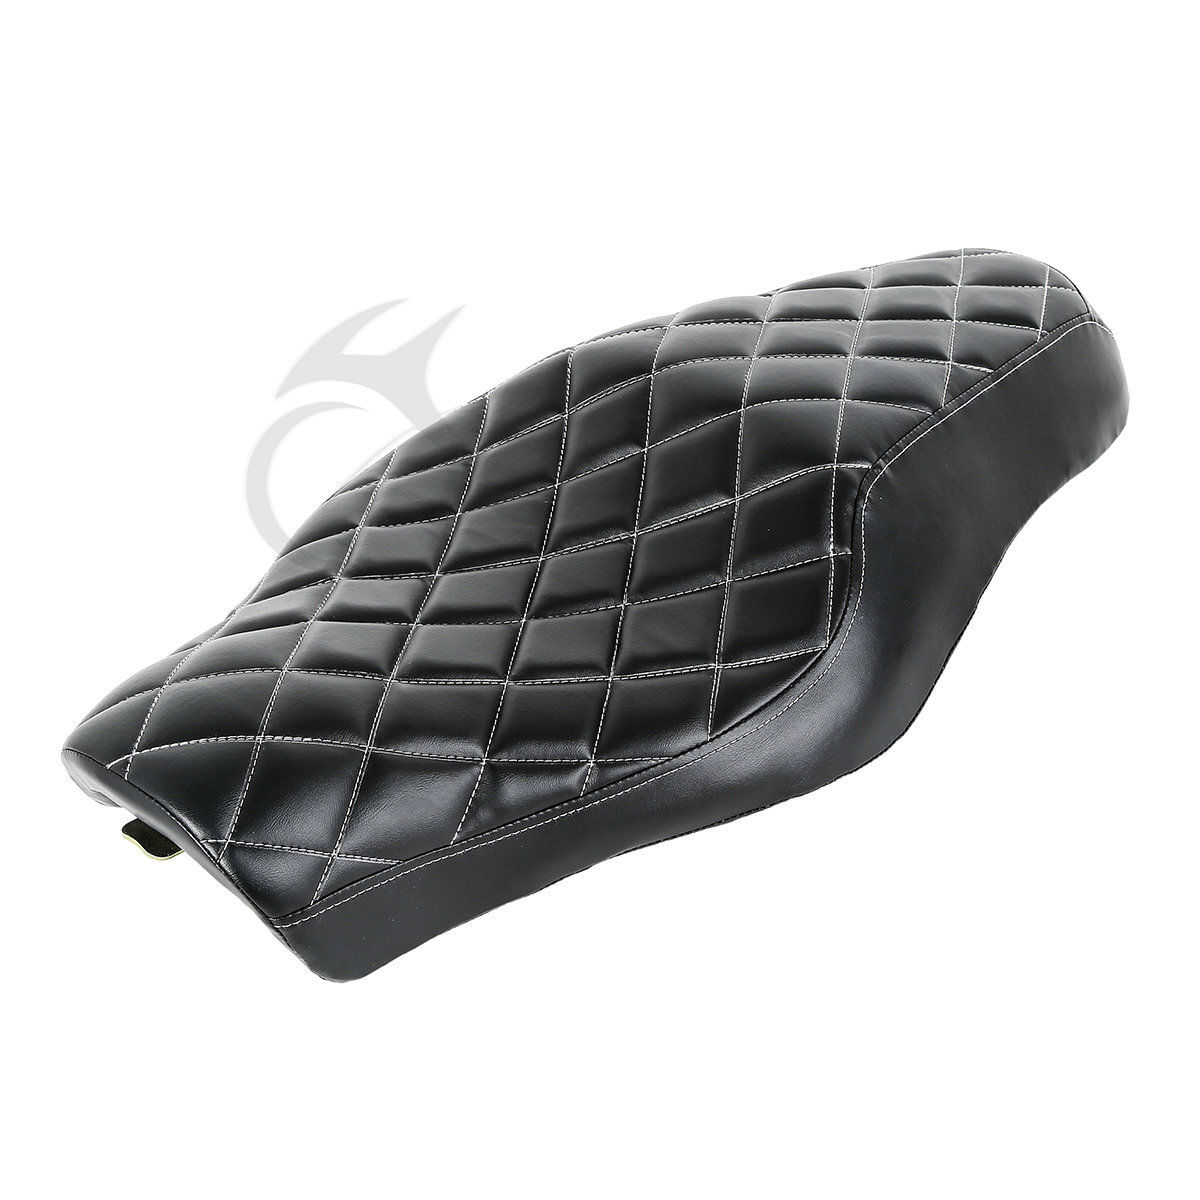 US Motorcycle Driver/&Rear Passenger Seat Two Up For Harley Sportster XL 883 1200